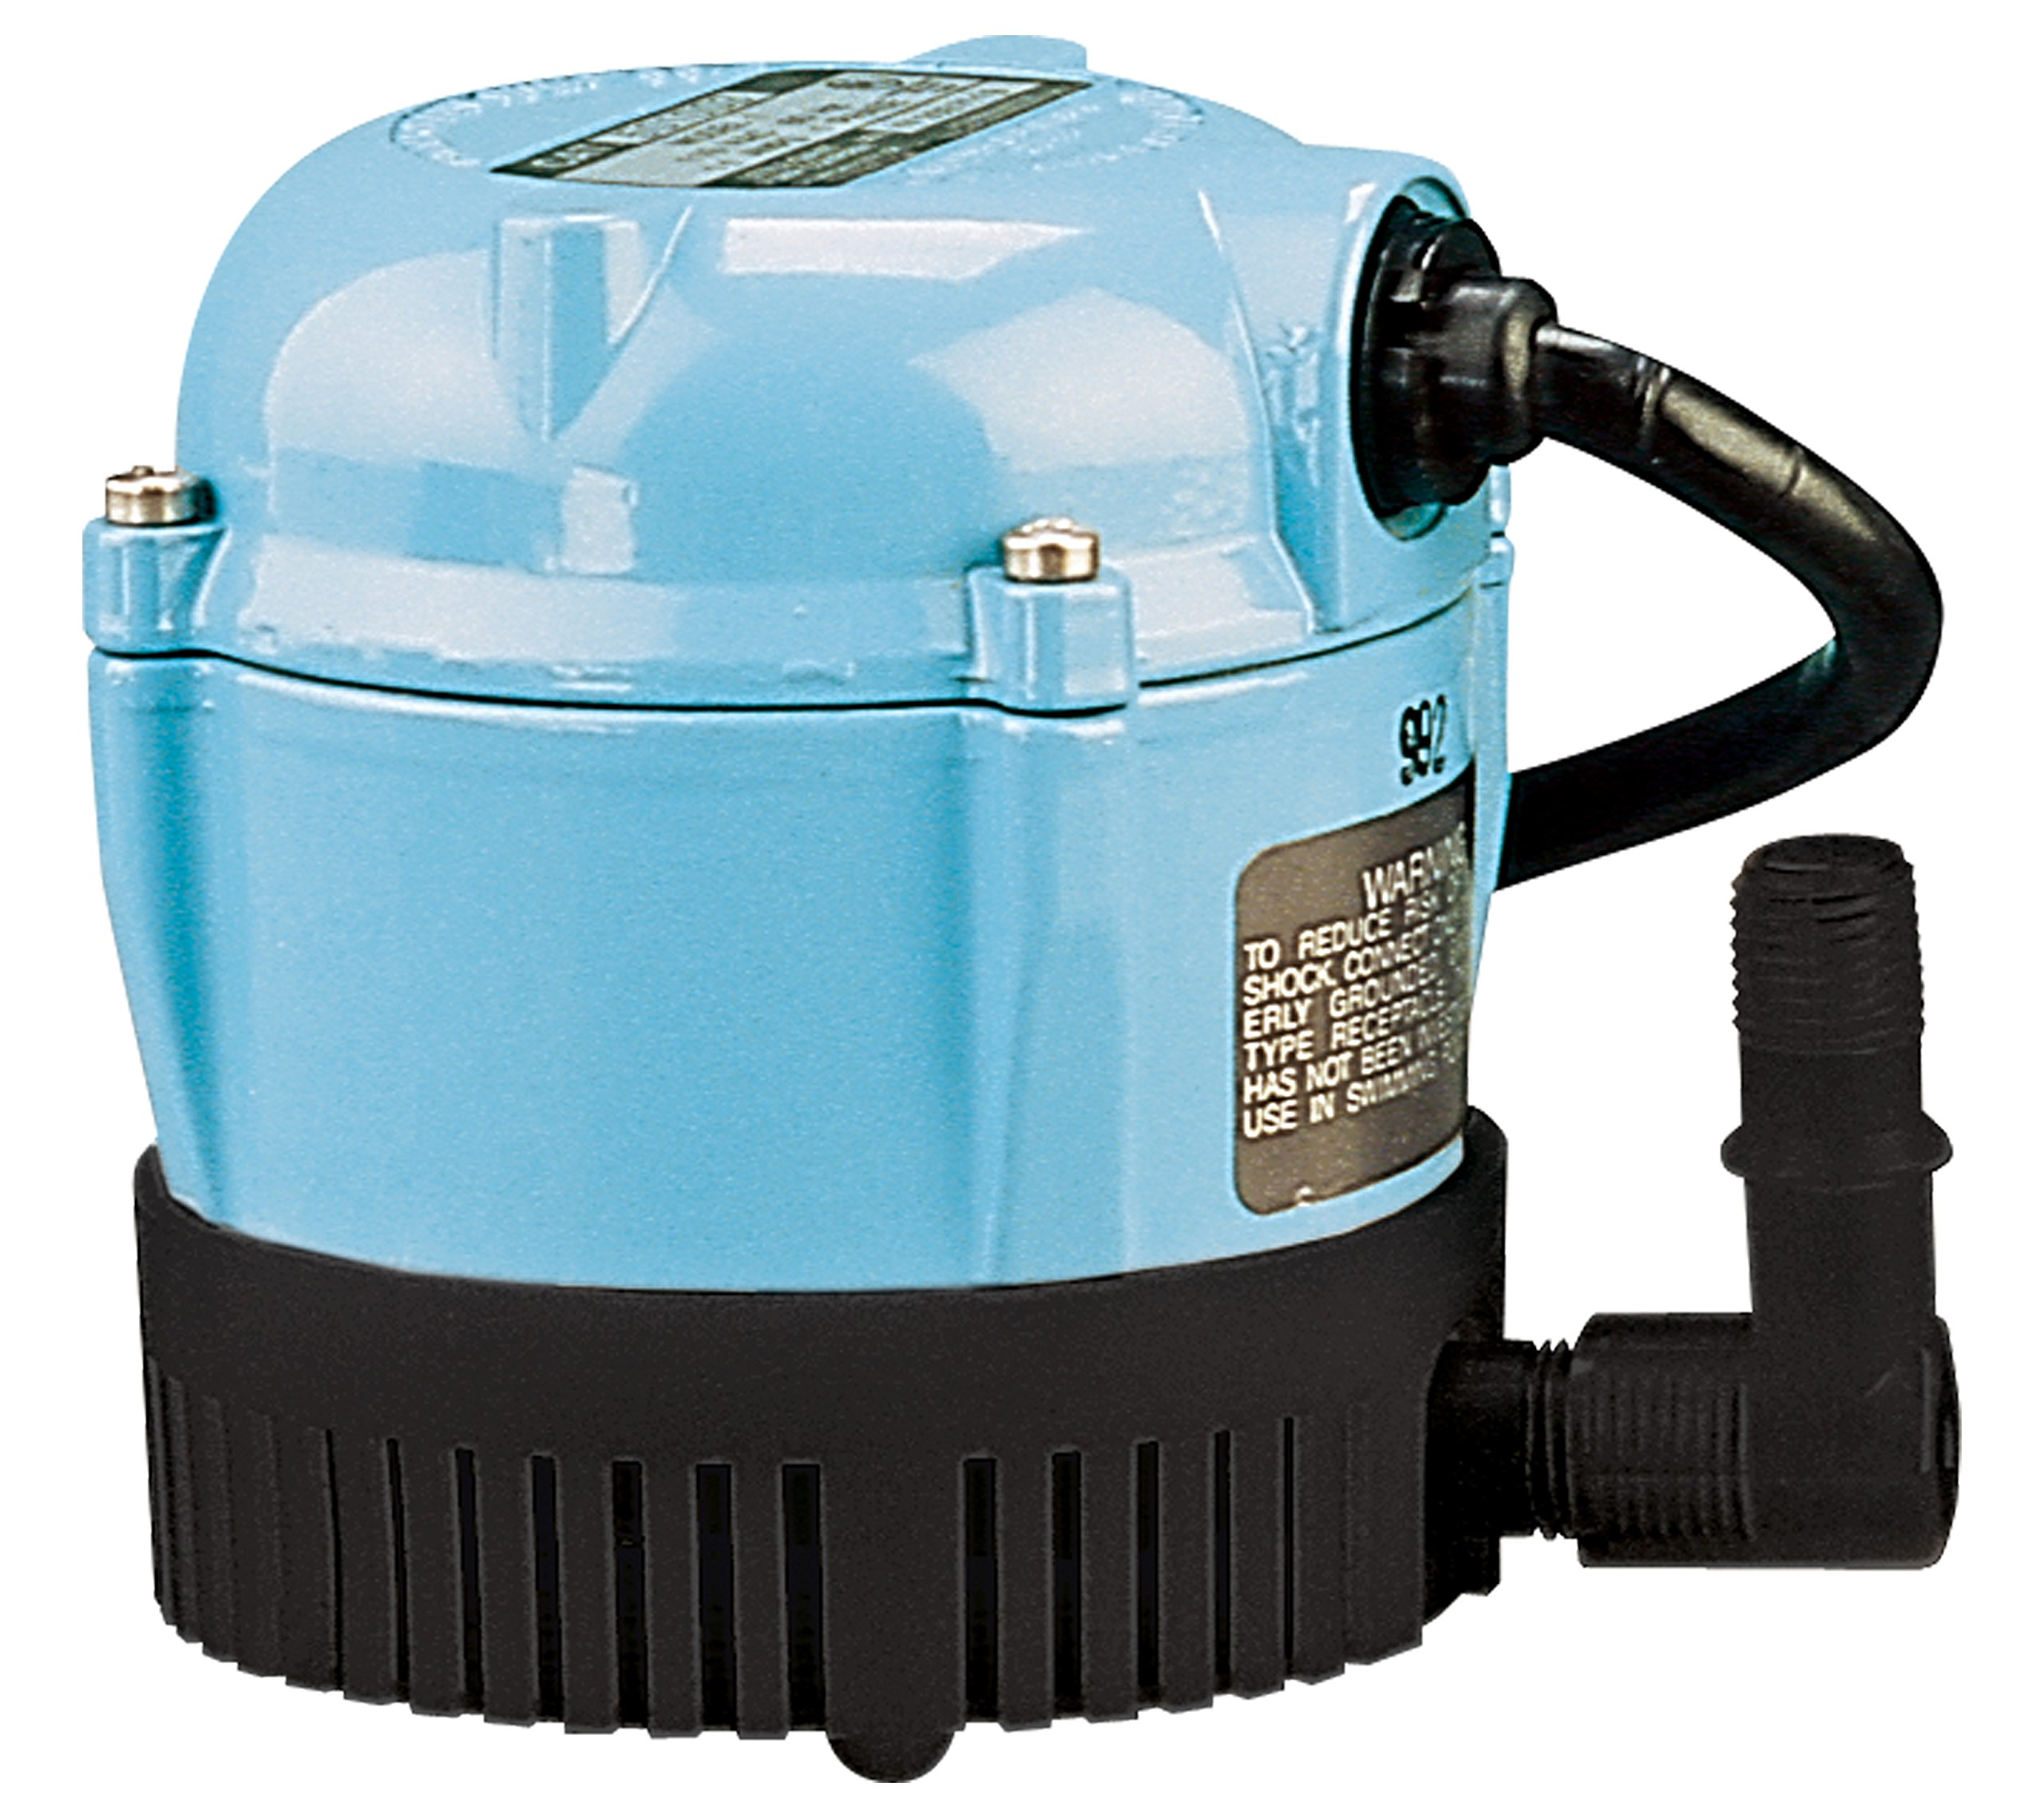 Little Giant 500203 Lubricated Pump, Permanently Oiled Direct Drive Pump, 1-A 170 GPH by LITTLE GIANT